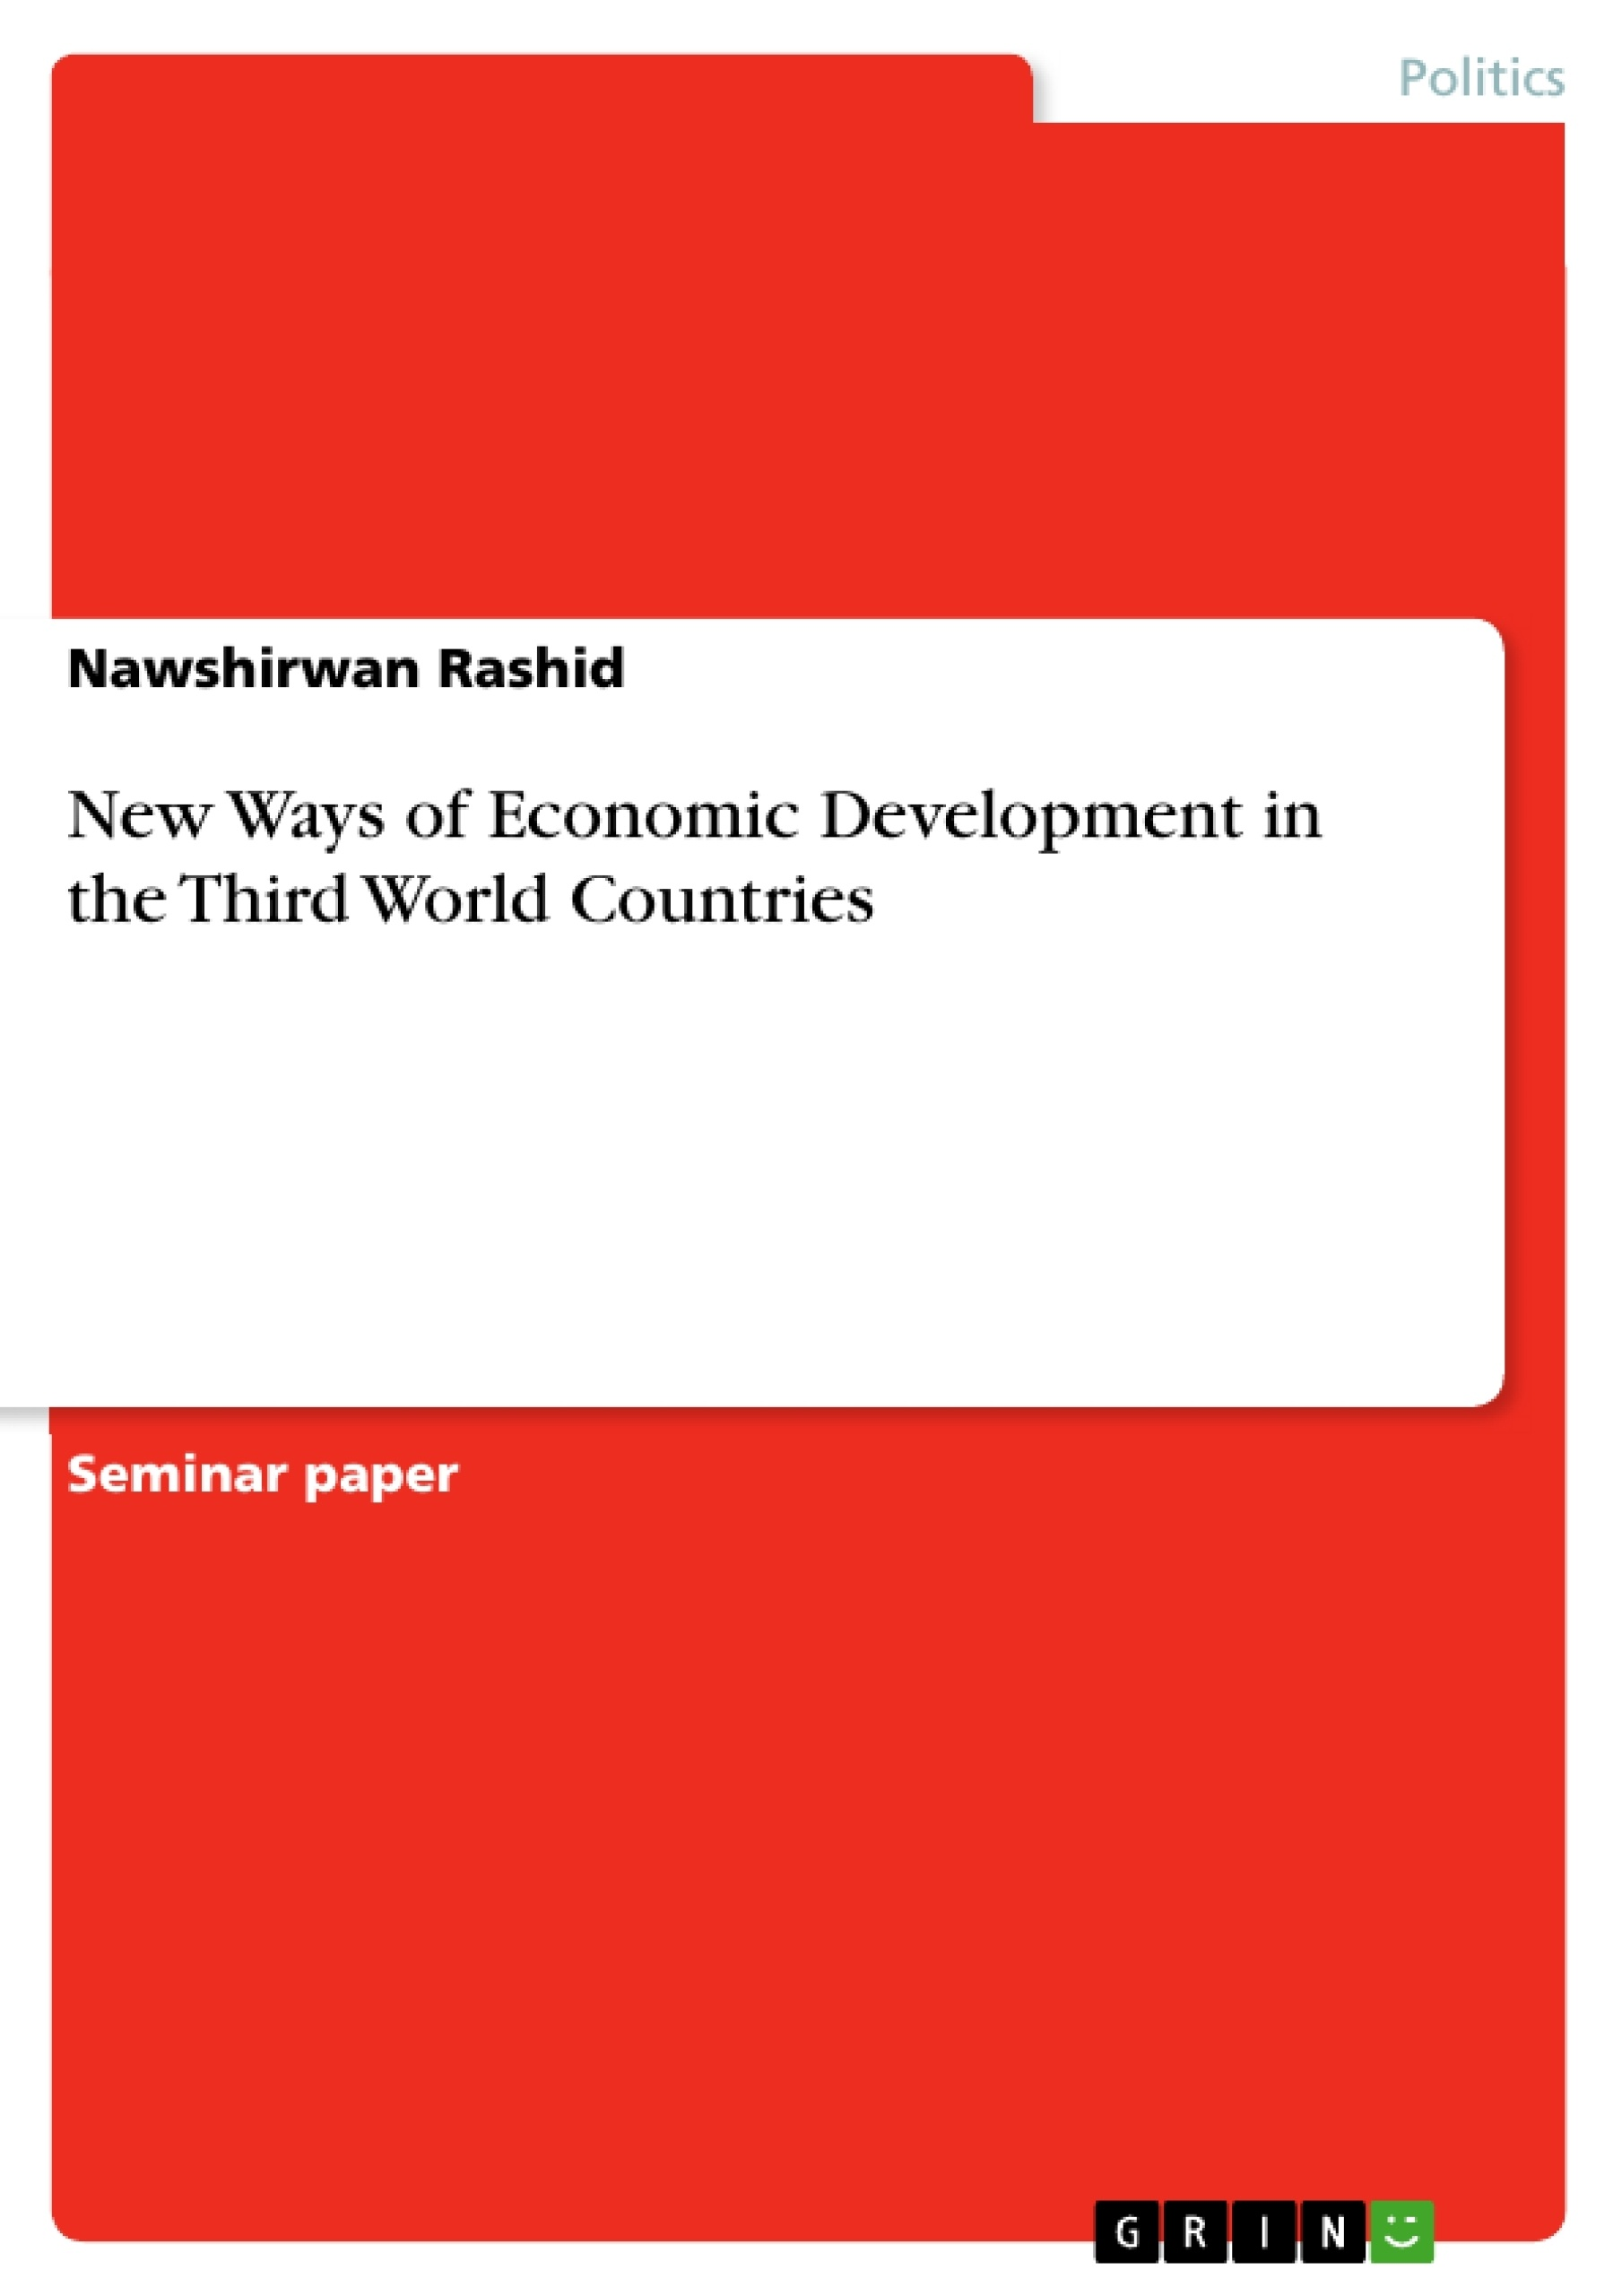 Title: New Ways of Economic Development in the Third World Countries